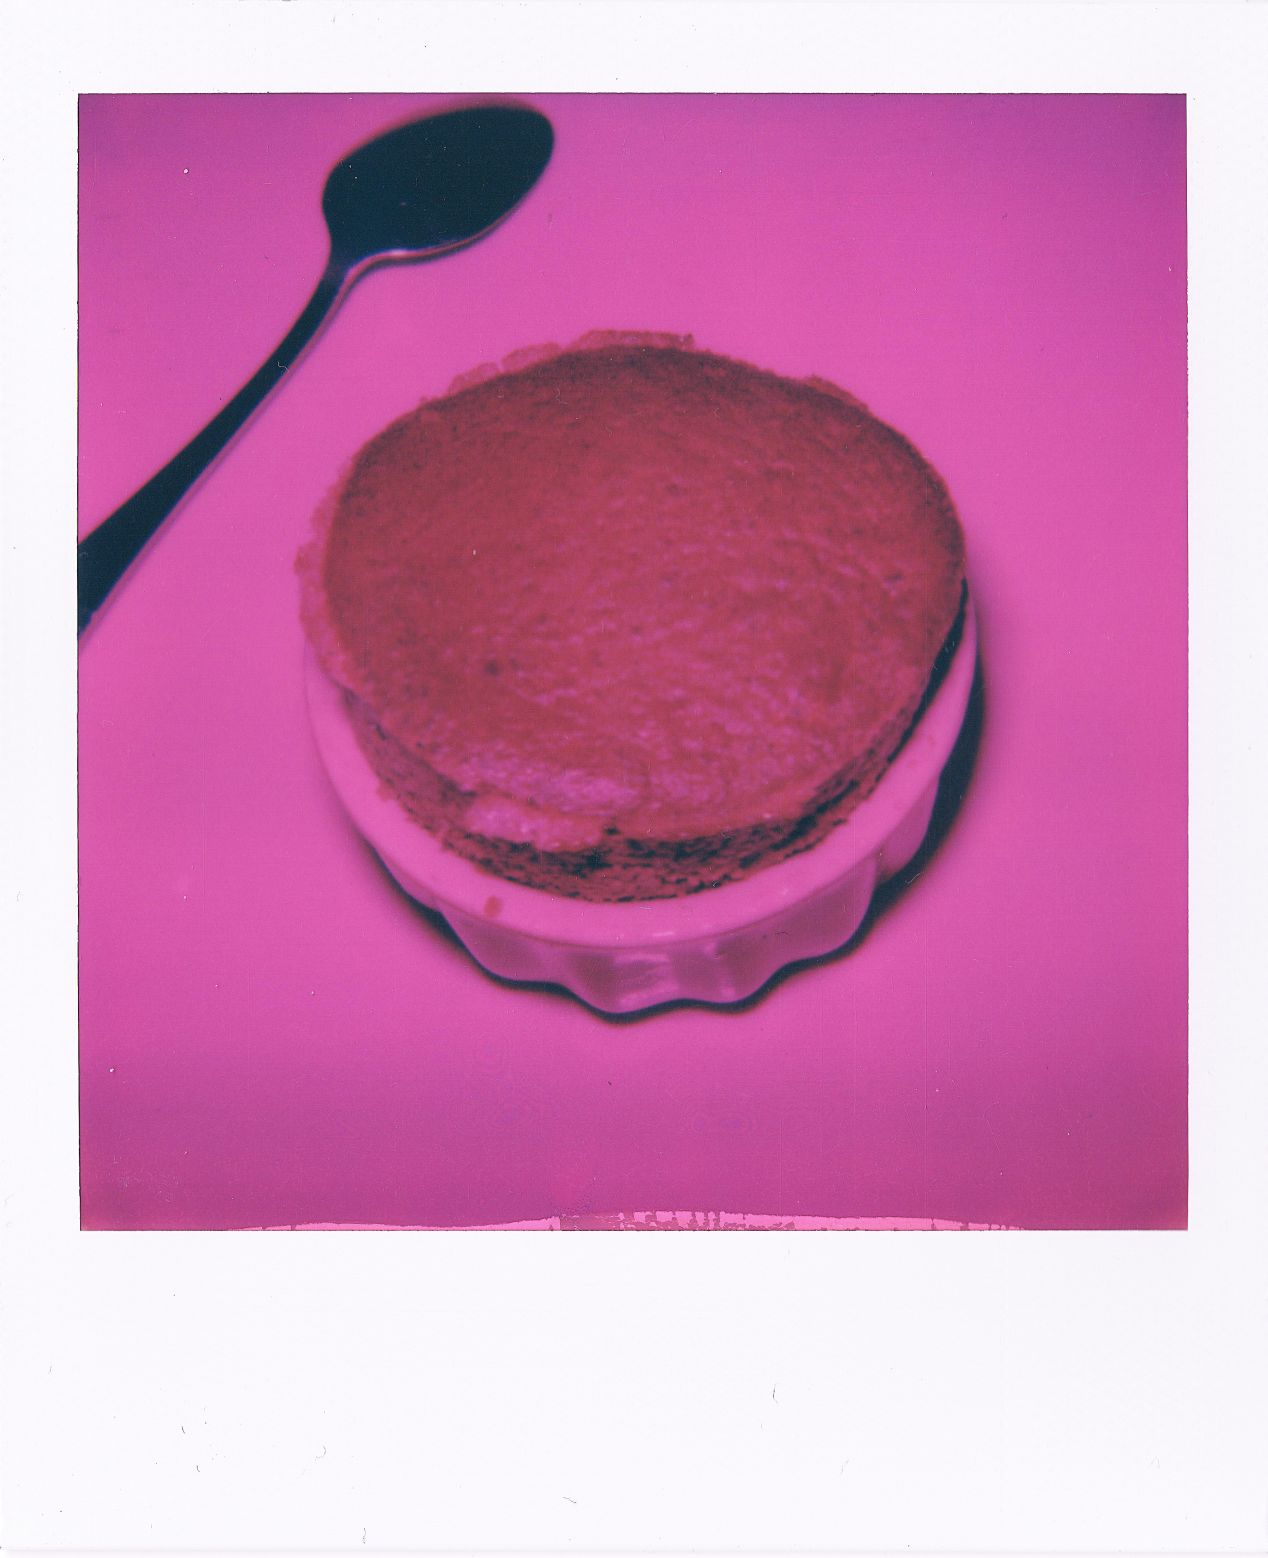 My MiNT Flash pink filter is quite aggressive, though it could be lovely for some ideas. Here I took a picture of a chocolate soufflé in a red ramekin on a white table.